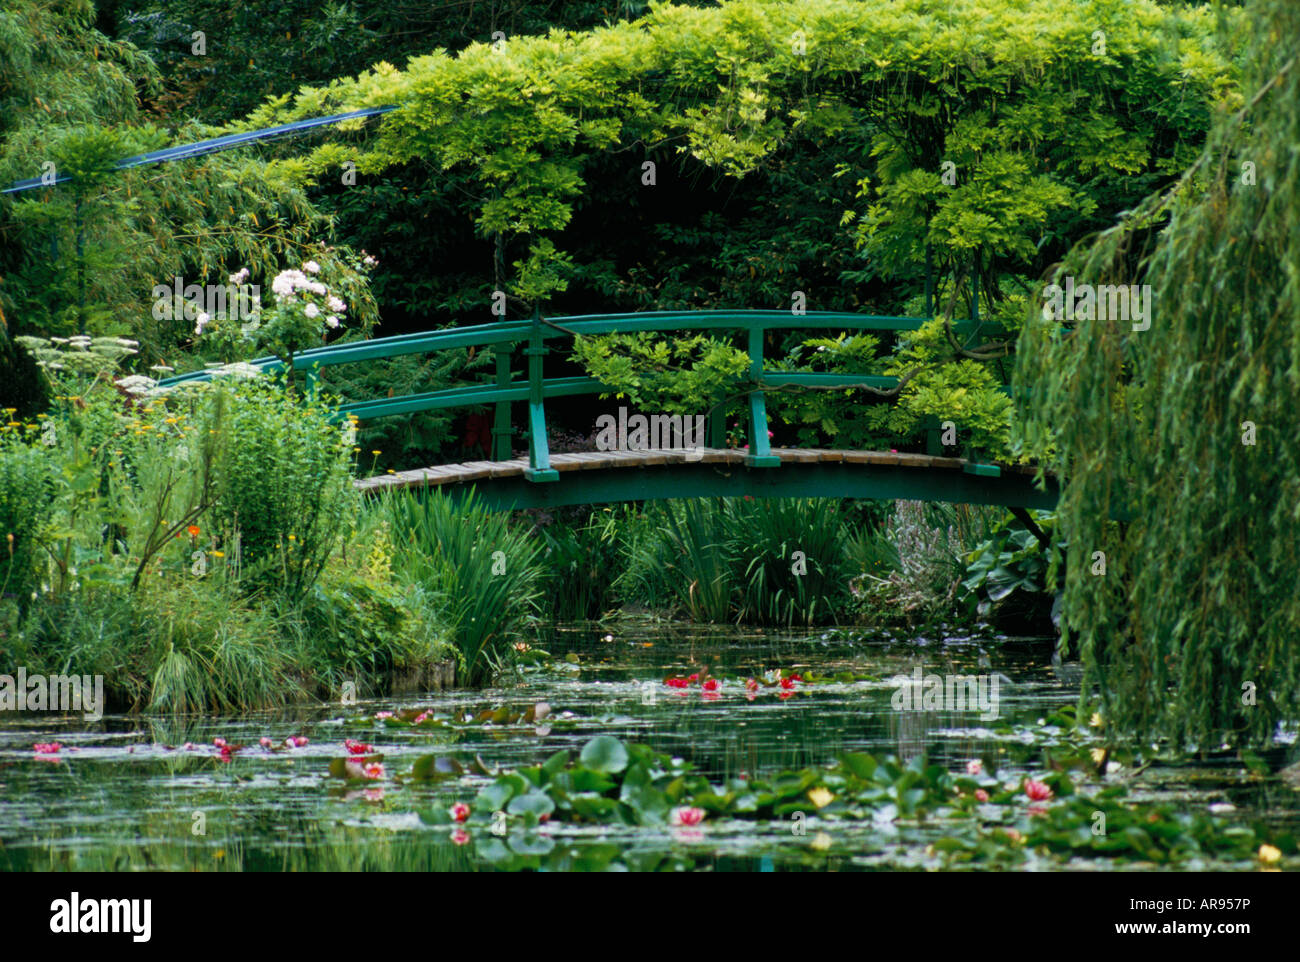 the-wisteria-covered-japanese-bridge-ove